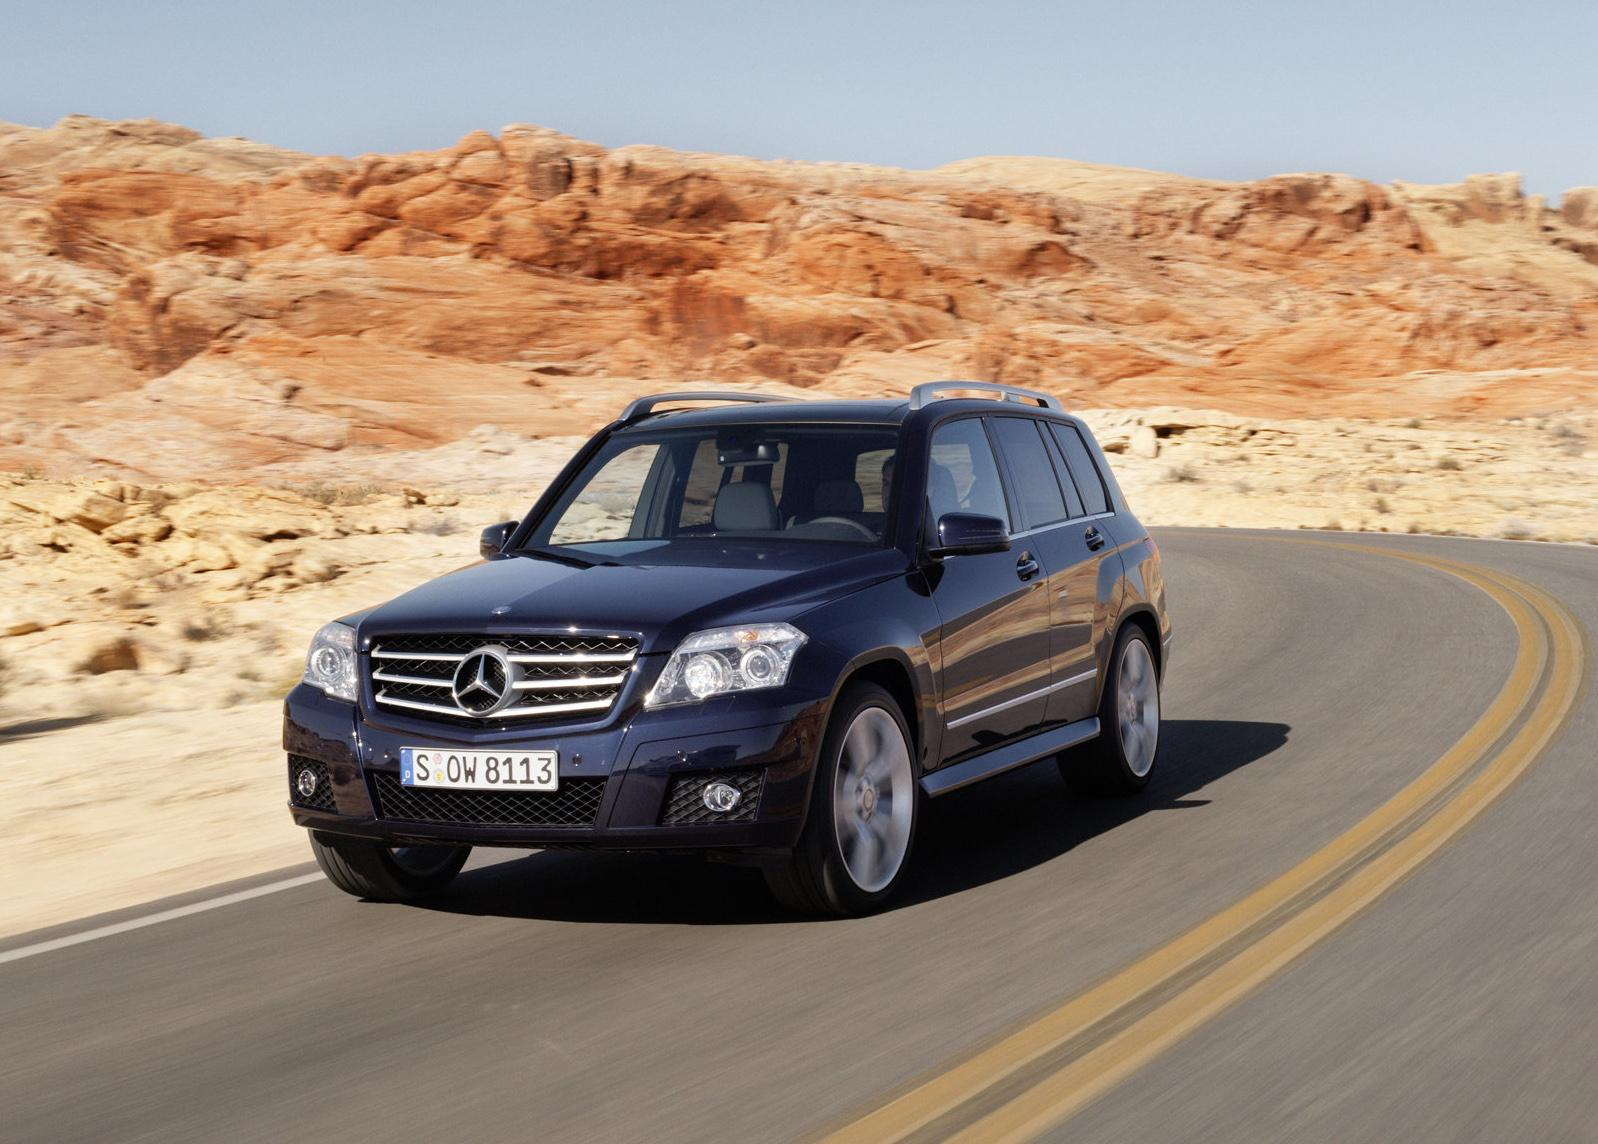 2010 mercedes benz glk 350 4matic news and information. Black Bedroom Furniture Sets. Home Design Ideas